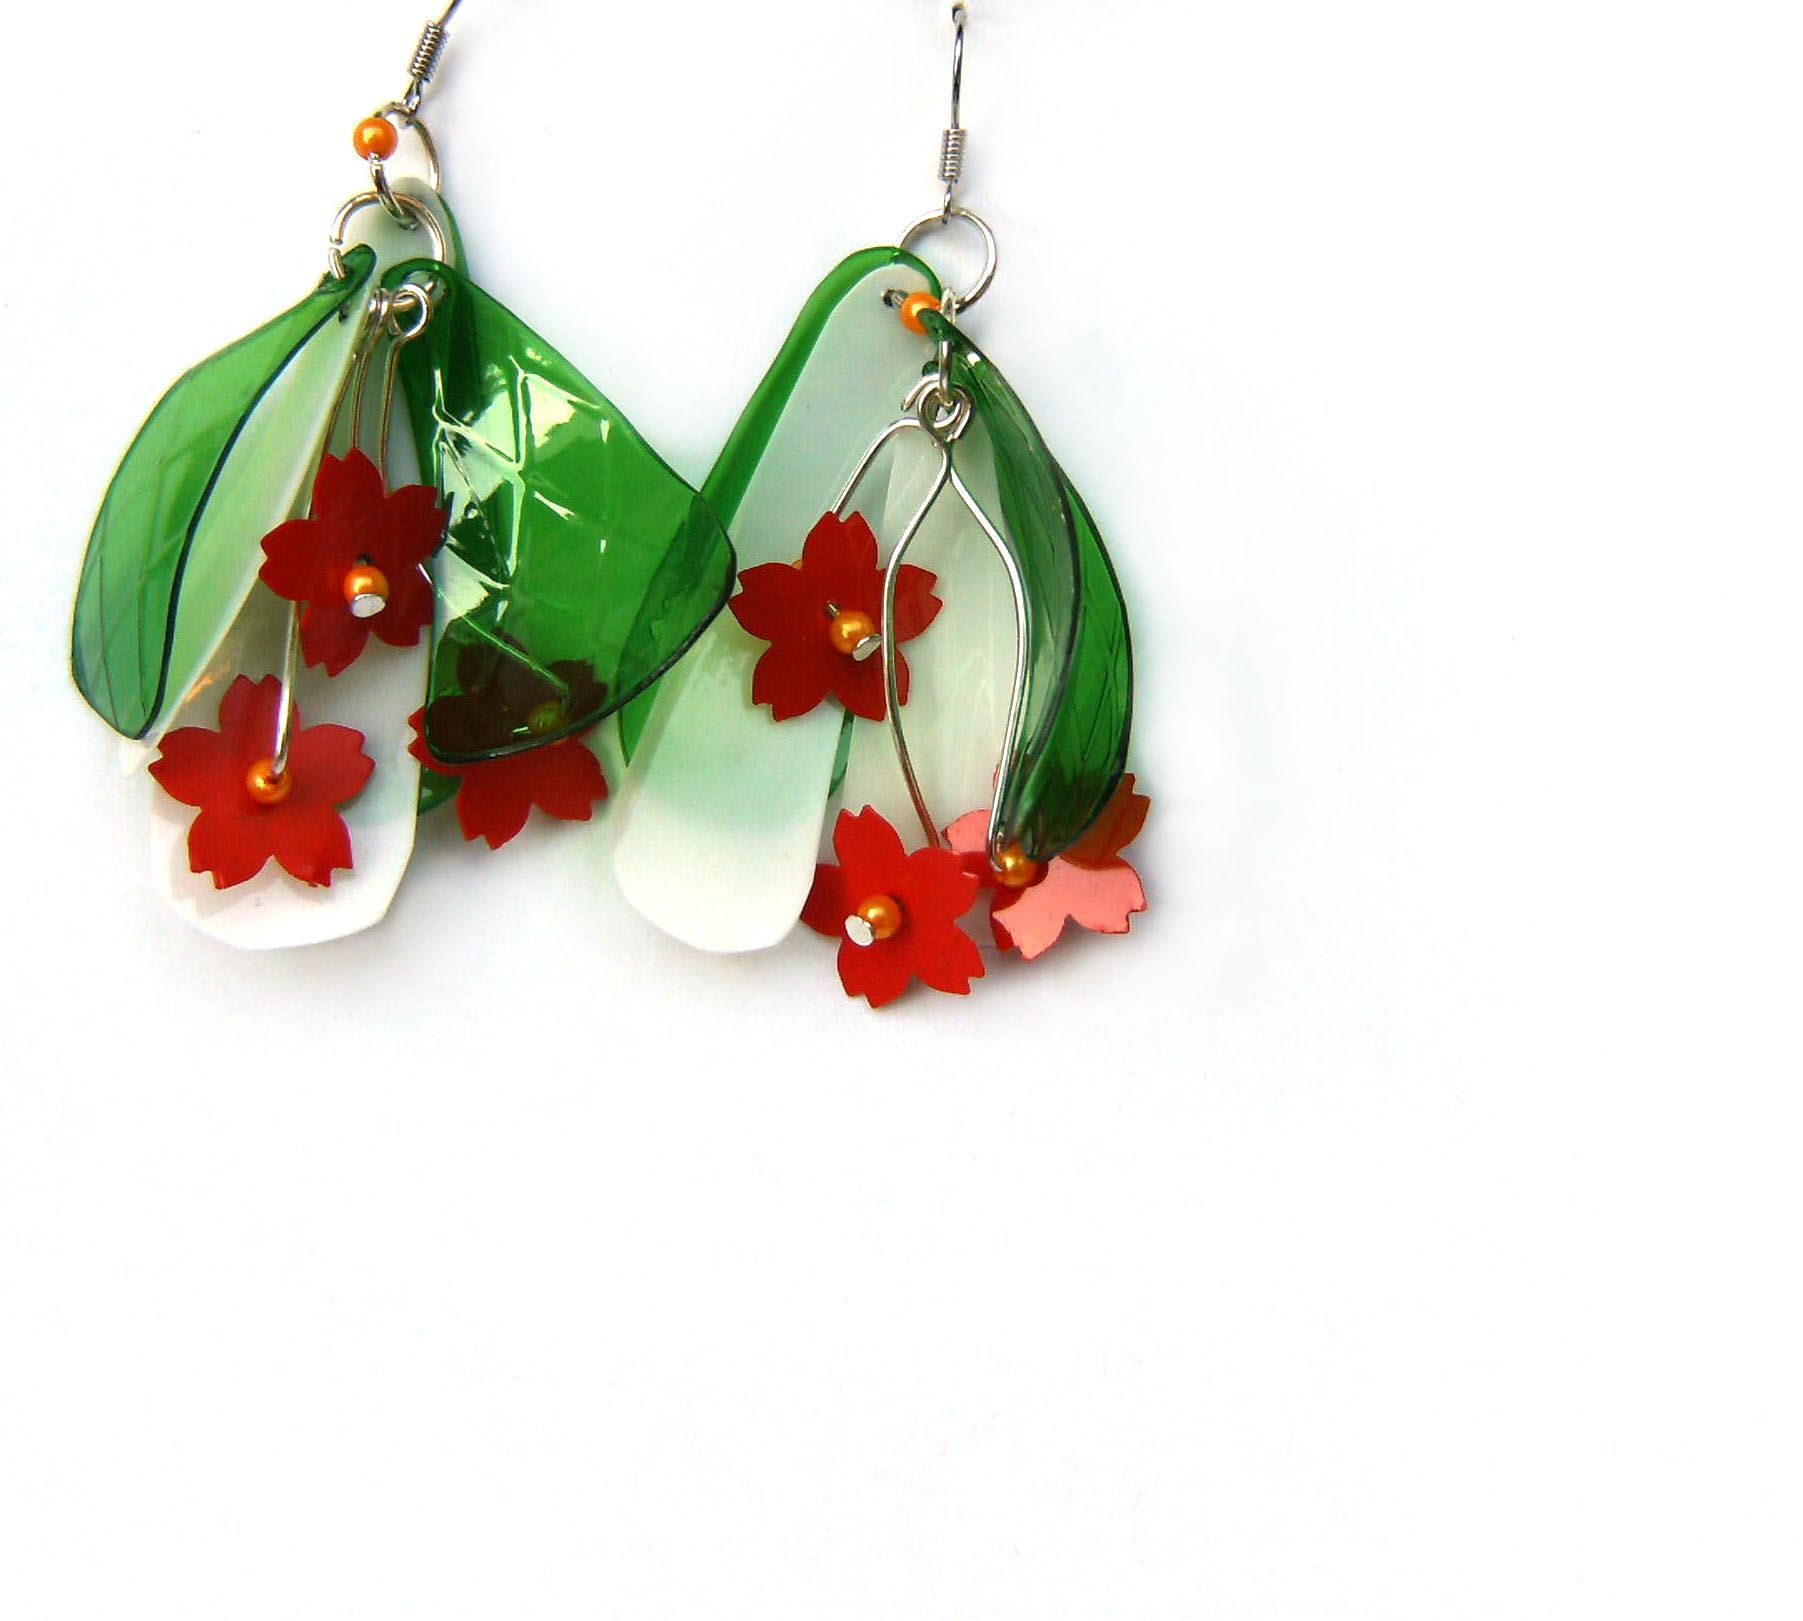 Blumen Aus Plastik Recycled Earrings Made From Pet Bottles And A Plastic